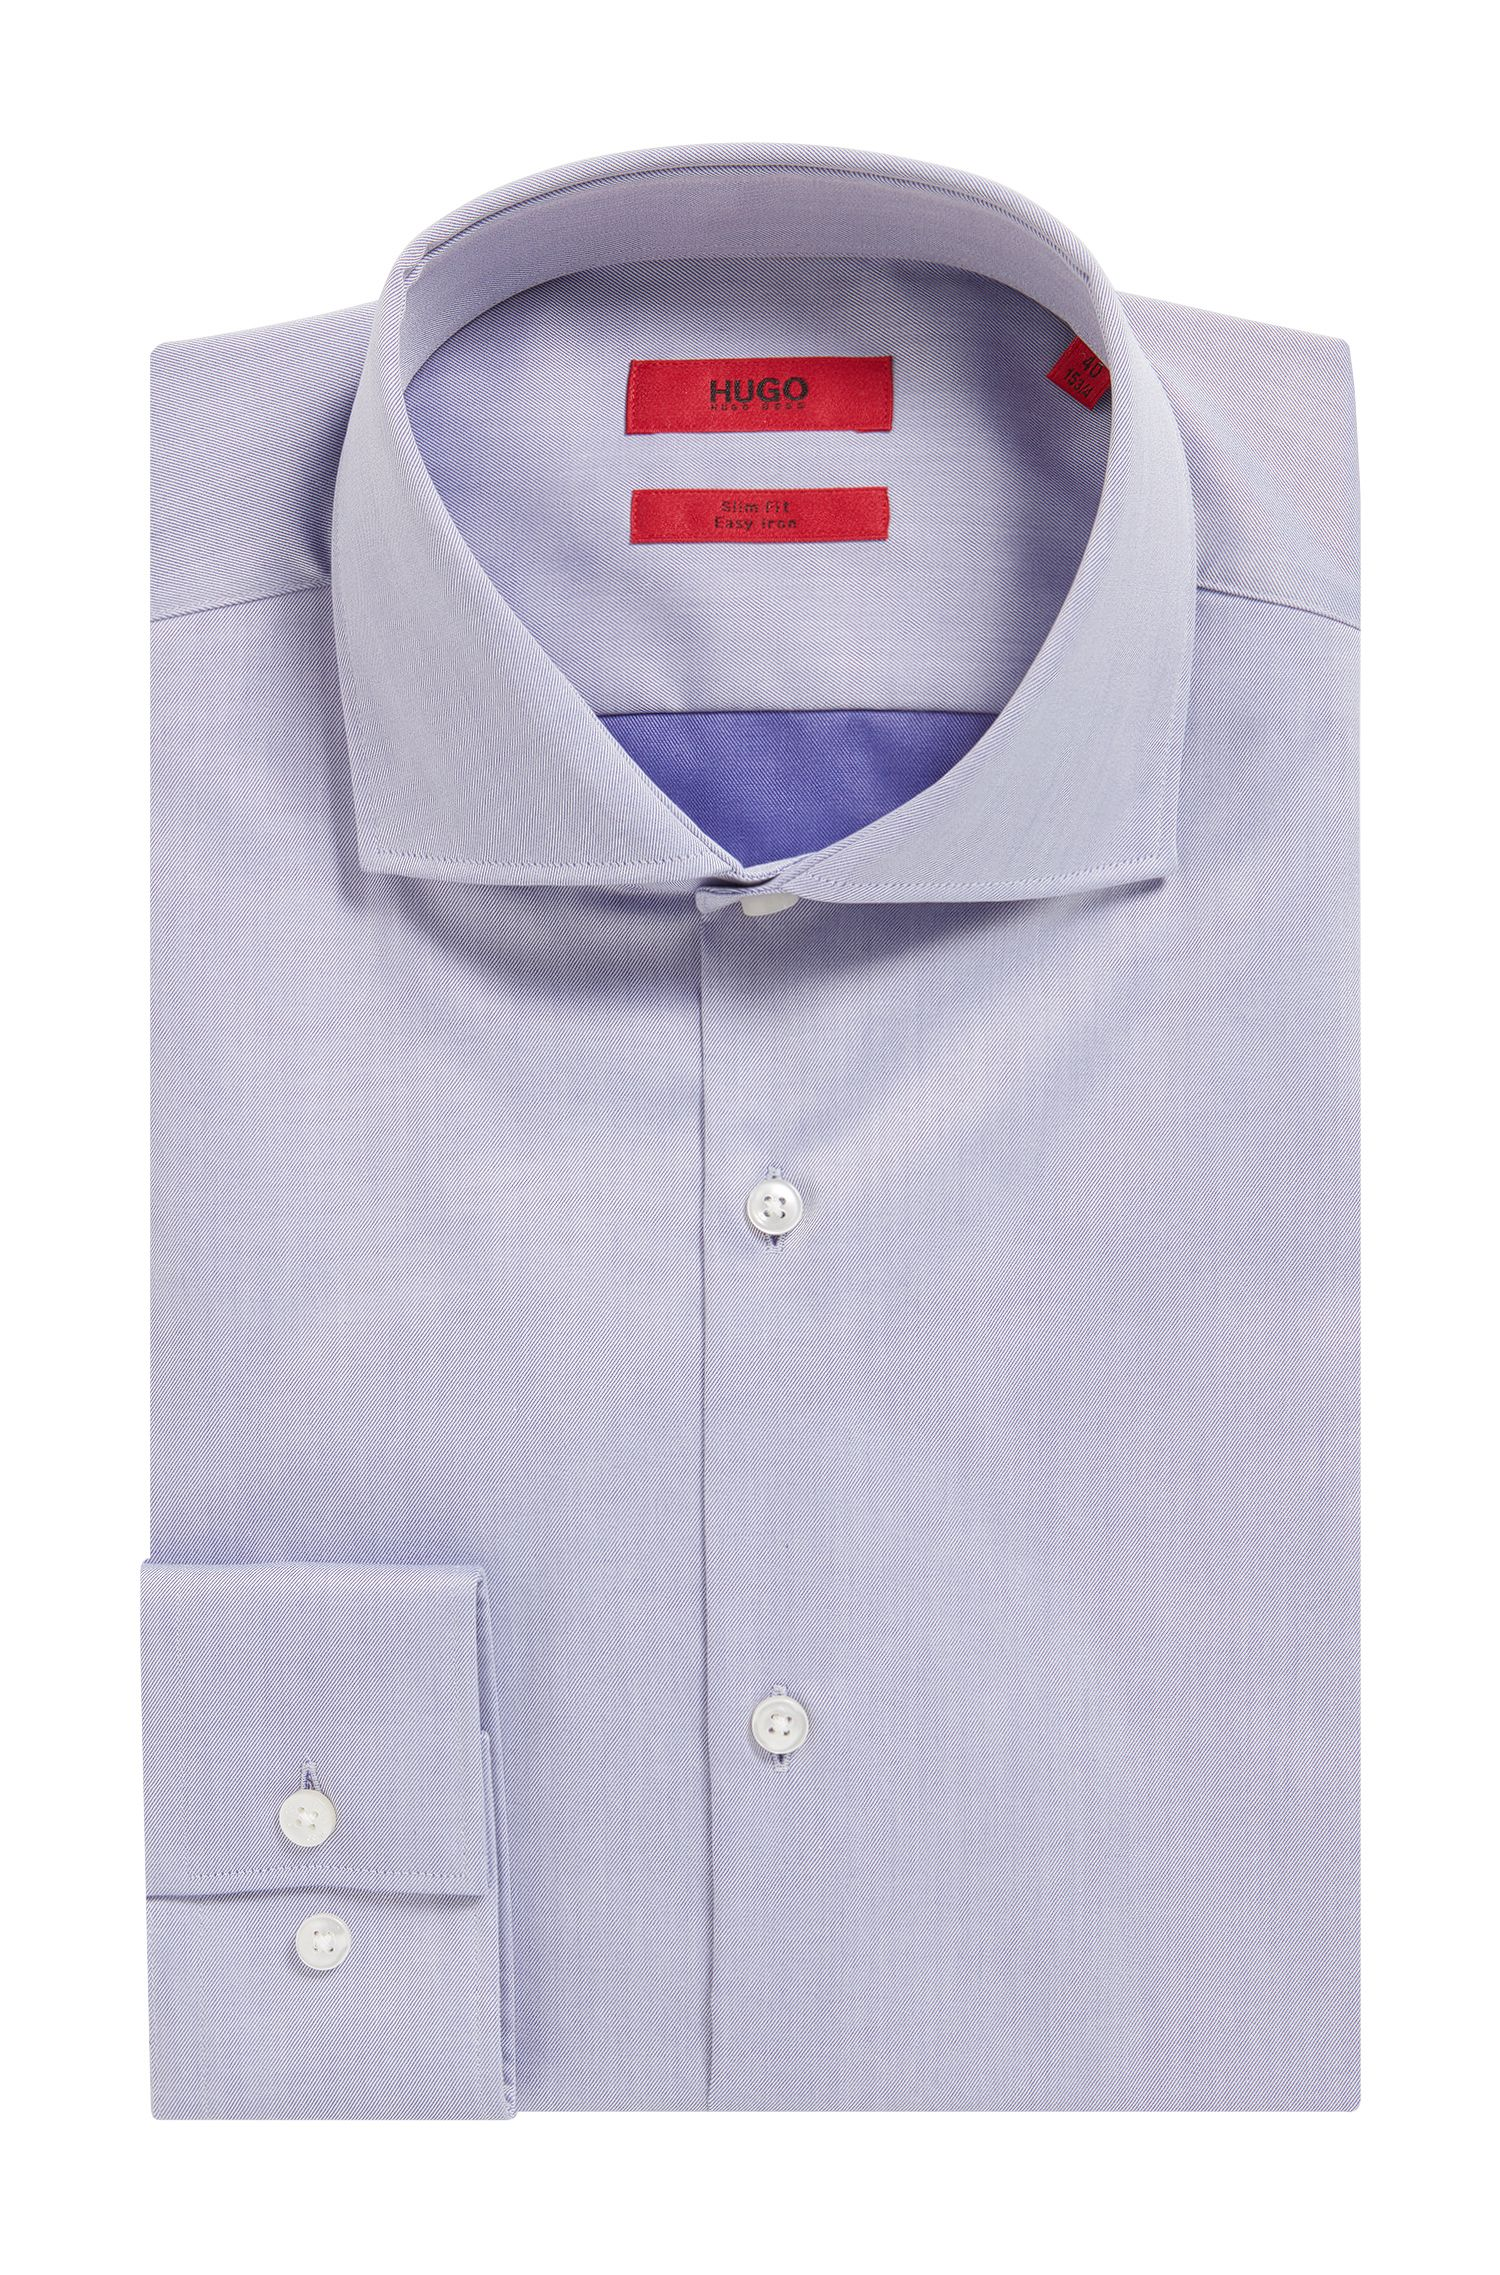 'C-Jason' | Slim Fit, Easy-Iron Cotton Poplin Shirt